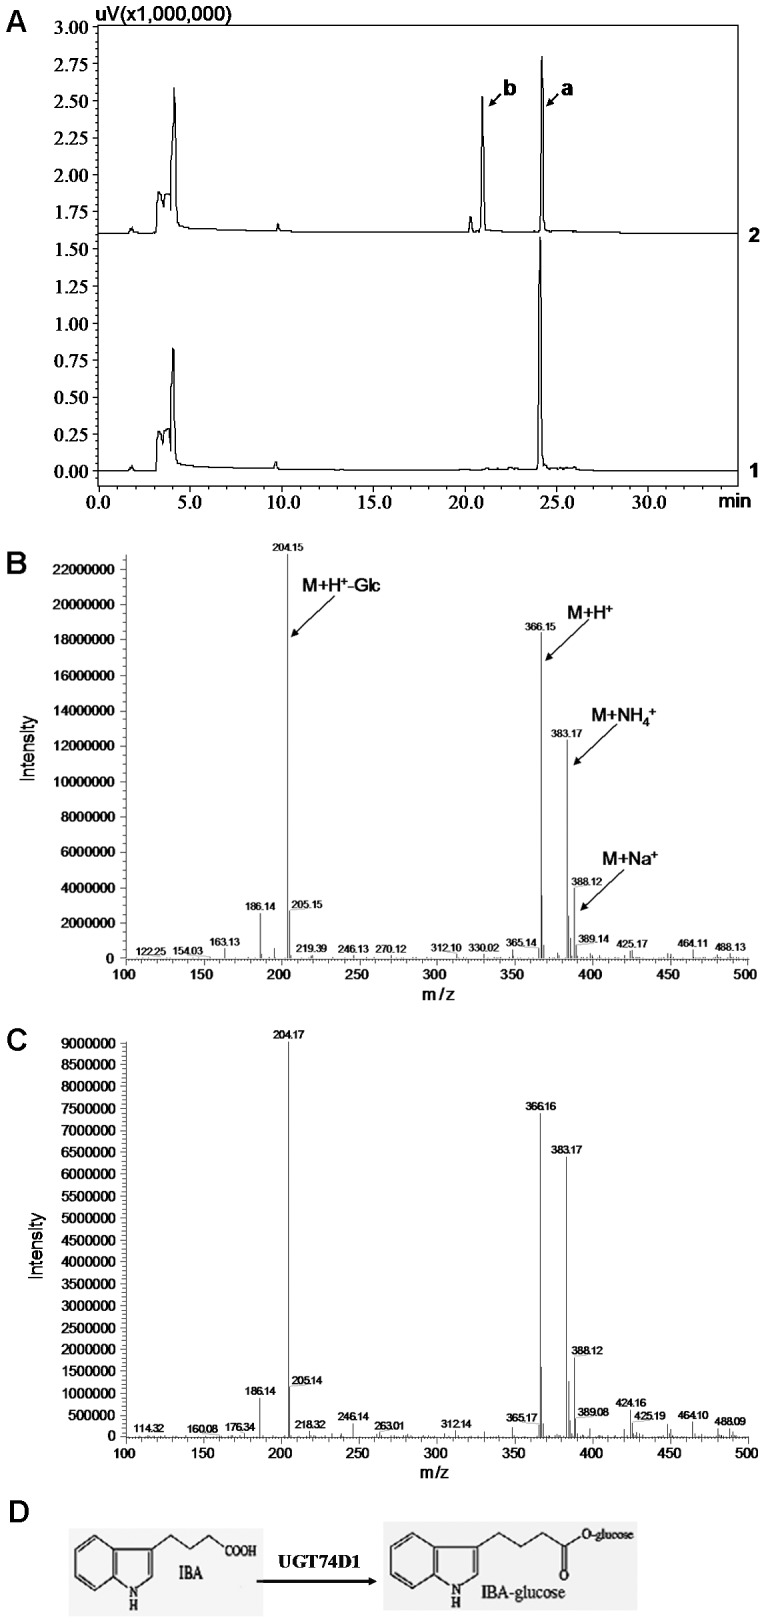 """HPLC and LC-MS analysis of reaction product from IBA. (A) HPLC analysis. 1: the reaction was added with GST protein as control. 2: the reaction was added with UGT74D1 fusion protein and a new peak (peak b) was produced. Peak """"a"""" represents the substrate IBA. (B) LC-MS analysis of peak b. (C) LC-MS analysis of IBA glucose conjugates produced by the catalysis of UGT74E2 which was used as positive control in this research. (D) Proposed enzymes and biosynthetic pathway for the synthesis of IBA-glucose ester from the aglycone IBA."""